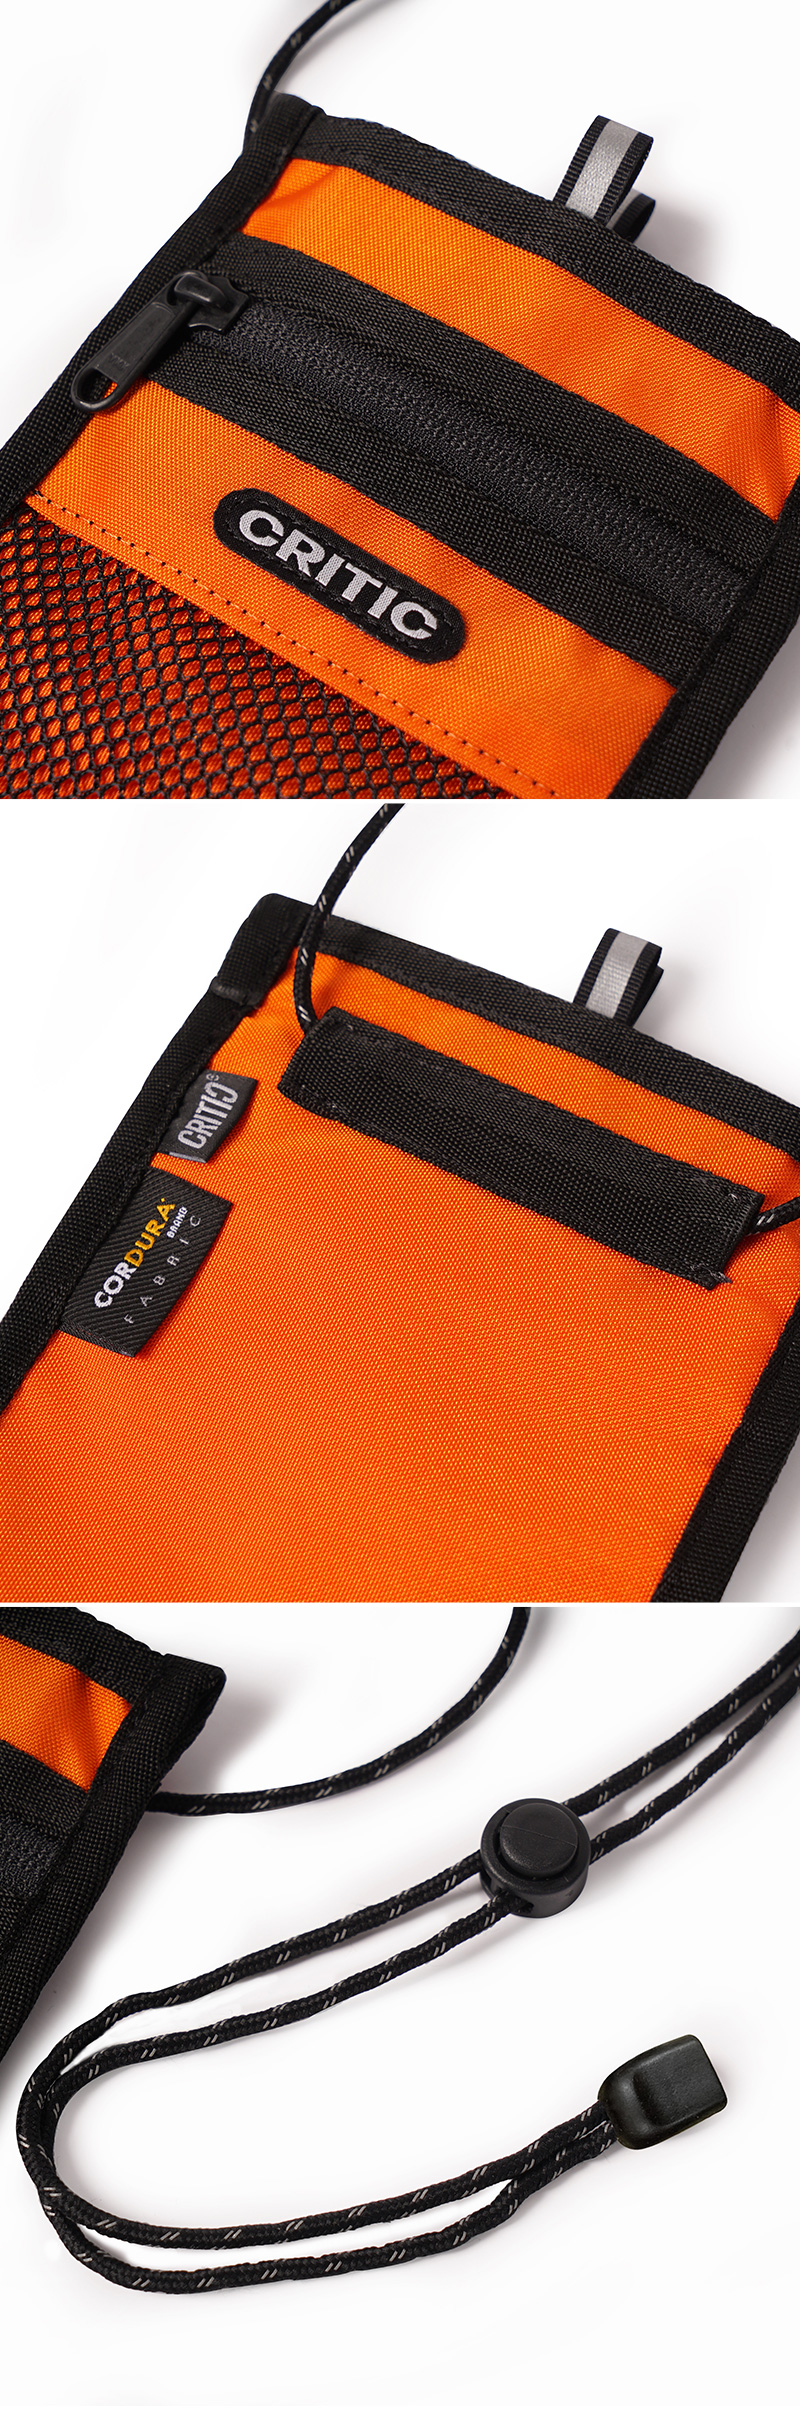 크리틱(CRITIC) CORDURA® PASSPORT BAG(ORANGE)_CTONUBG03UO0